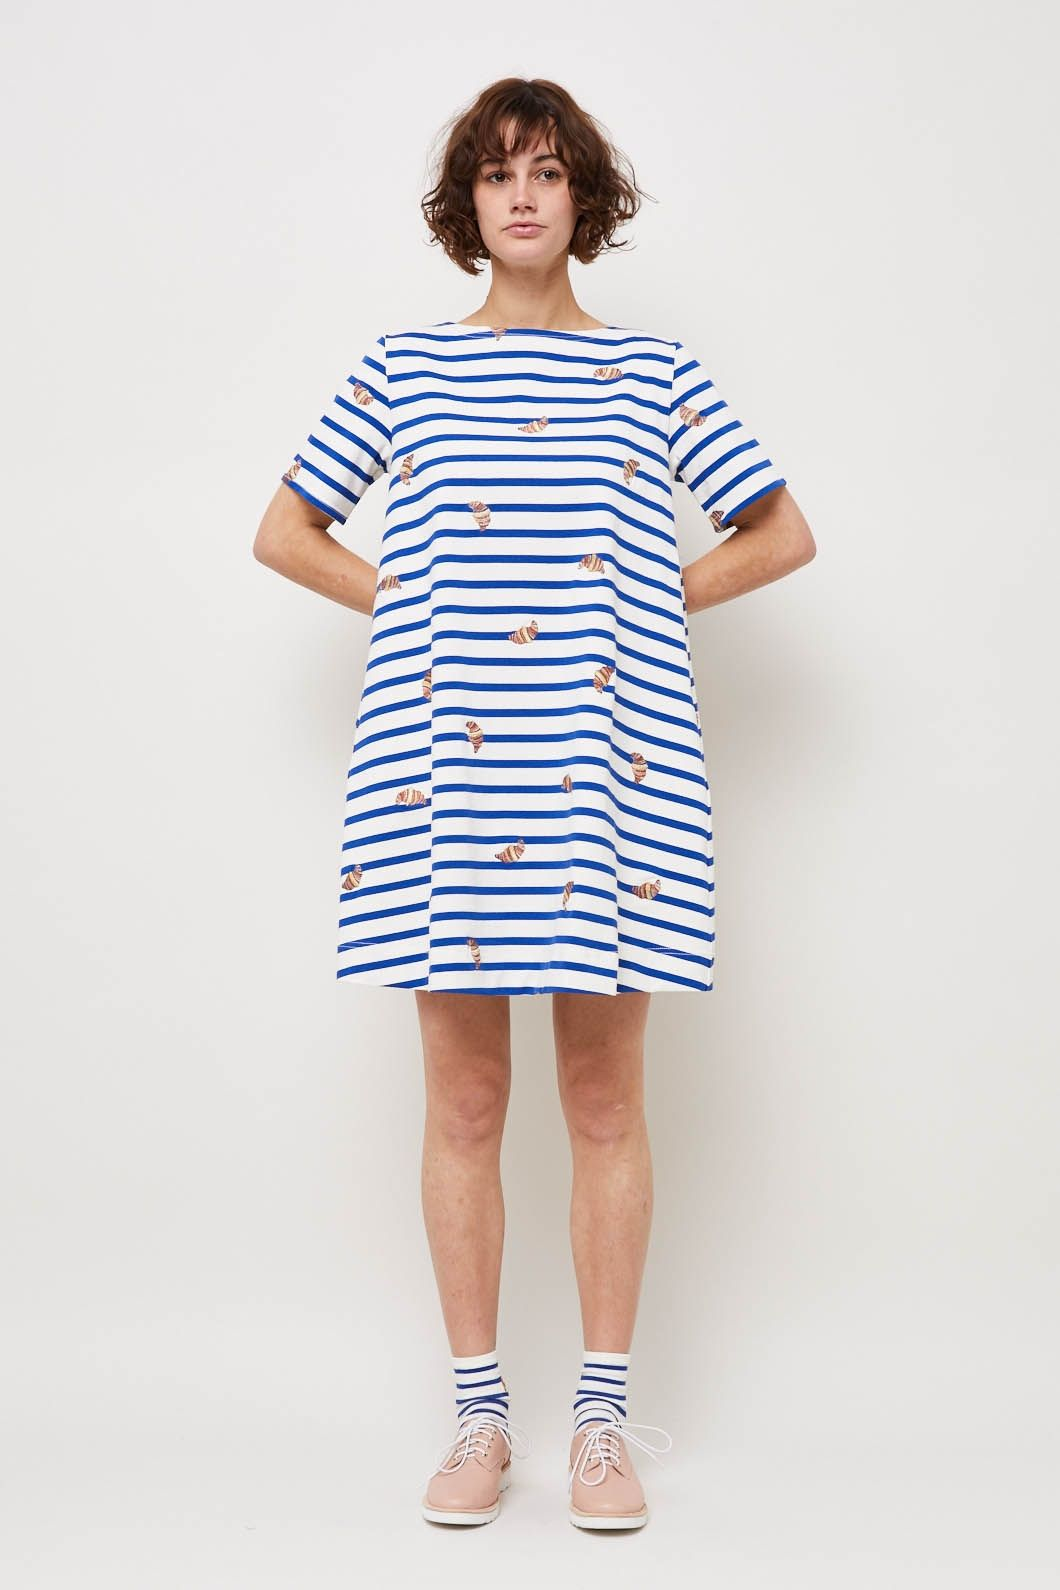 2454c439b1e8 Gorman Online :: Croissant Dress - All - Clothing | style: spring ...